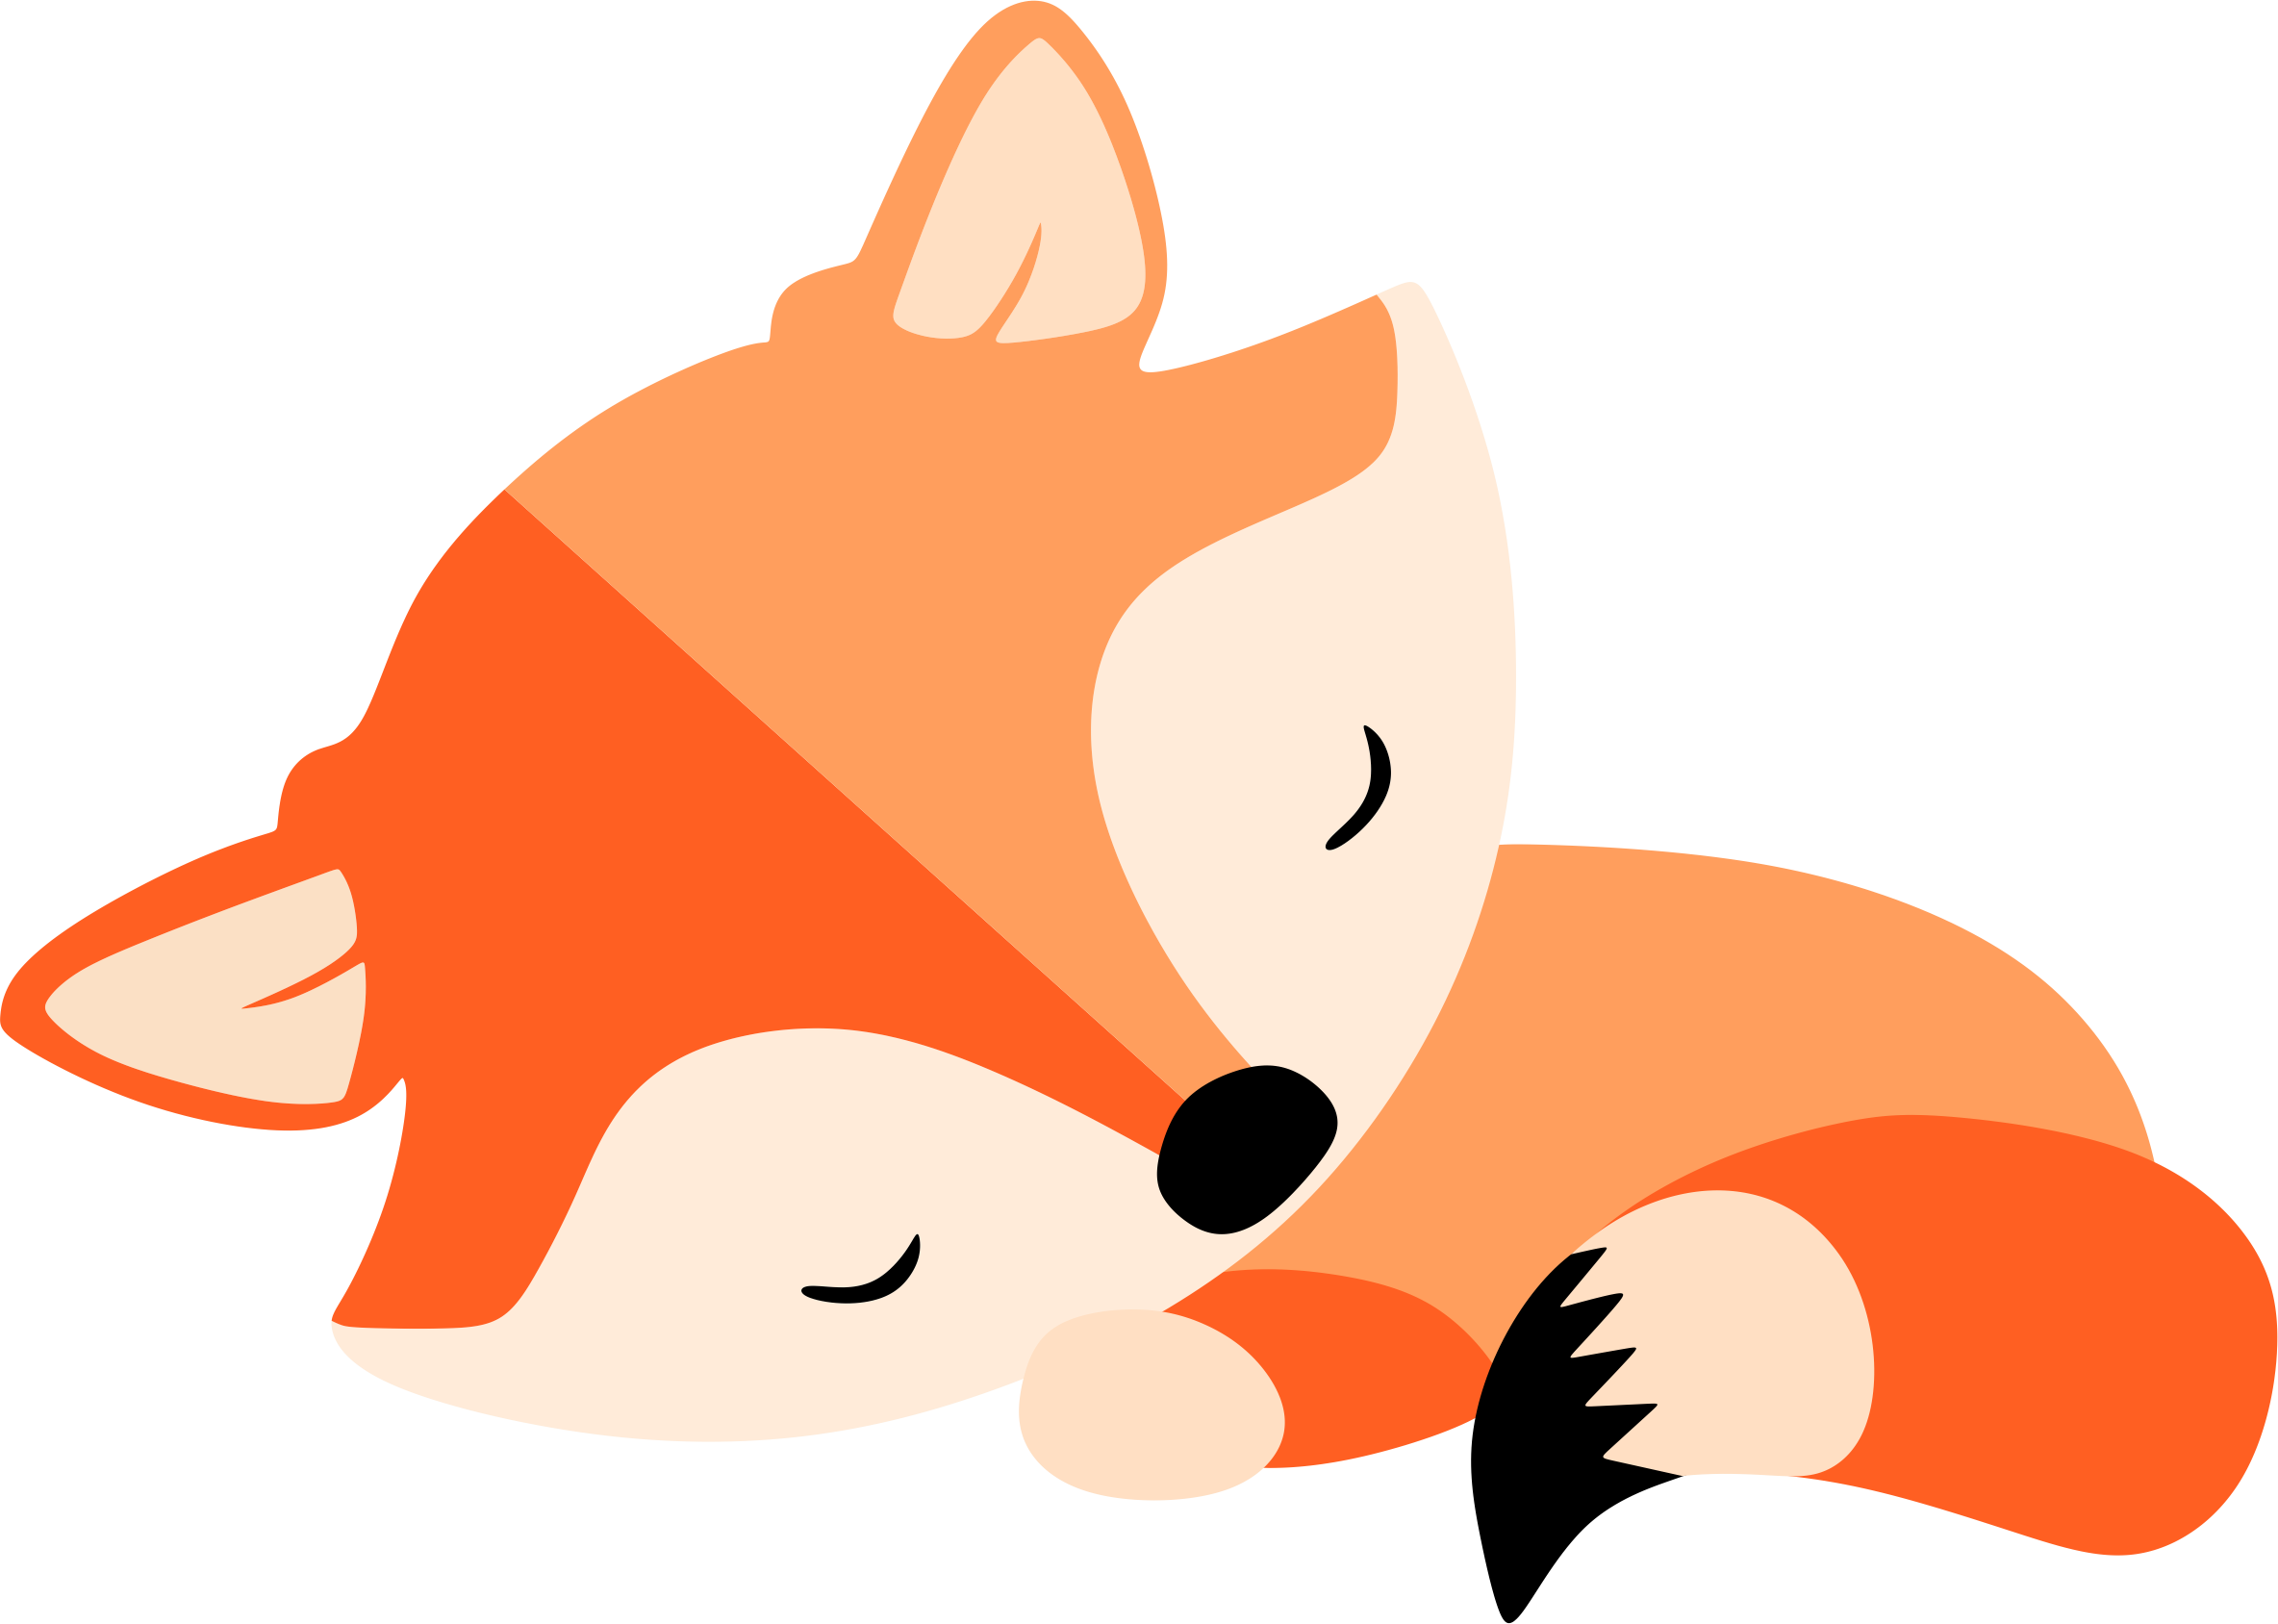 Fox PNG Images.